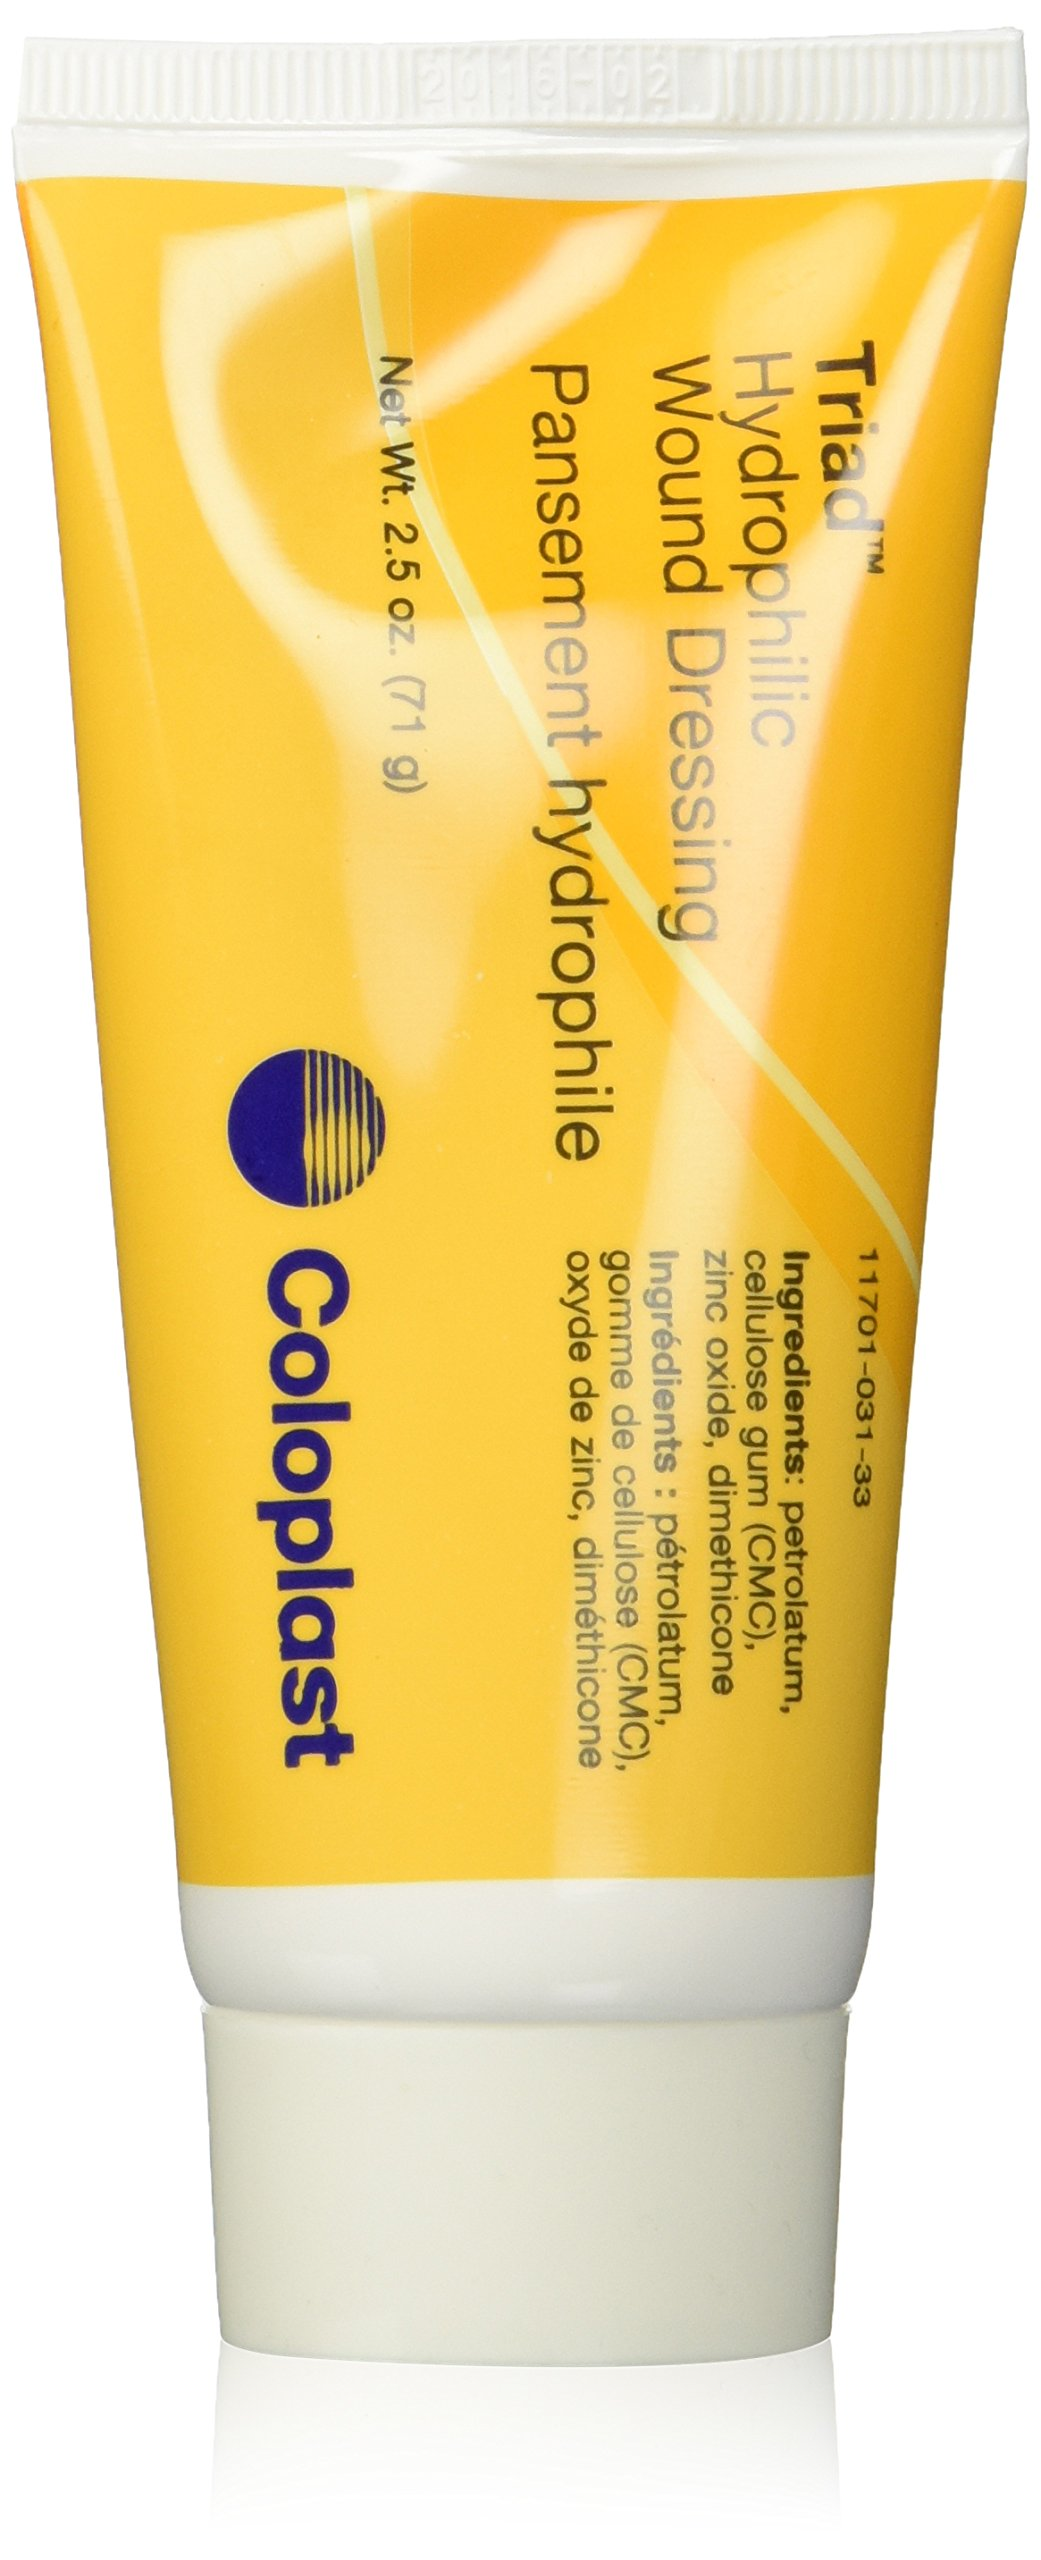 Coloplast Triad Hydrophilic Wound Dressing, 2.5 Oz Tube (621964) Category: Specialty Dressings Woundcare Products